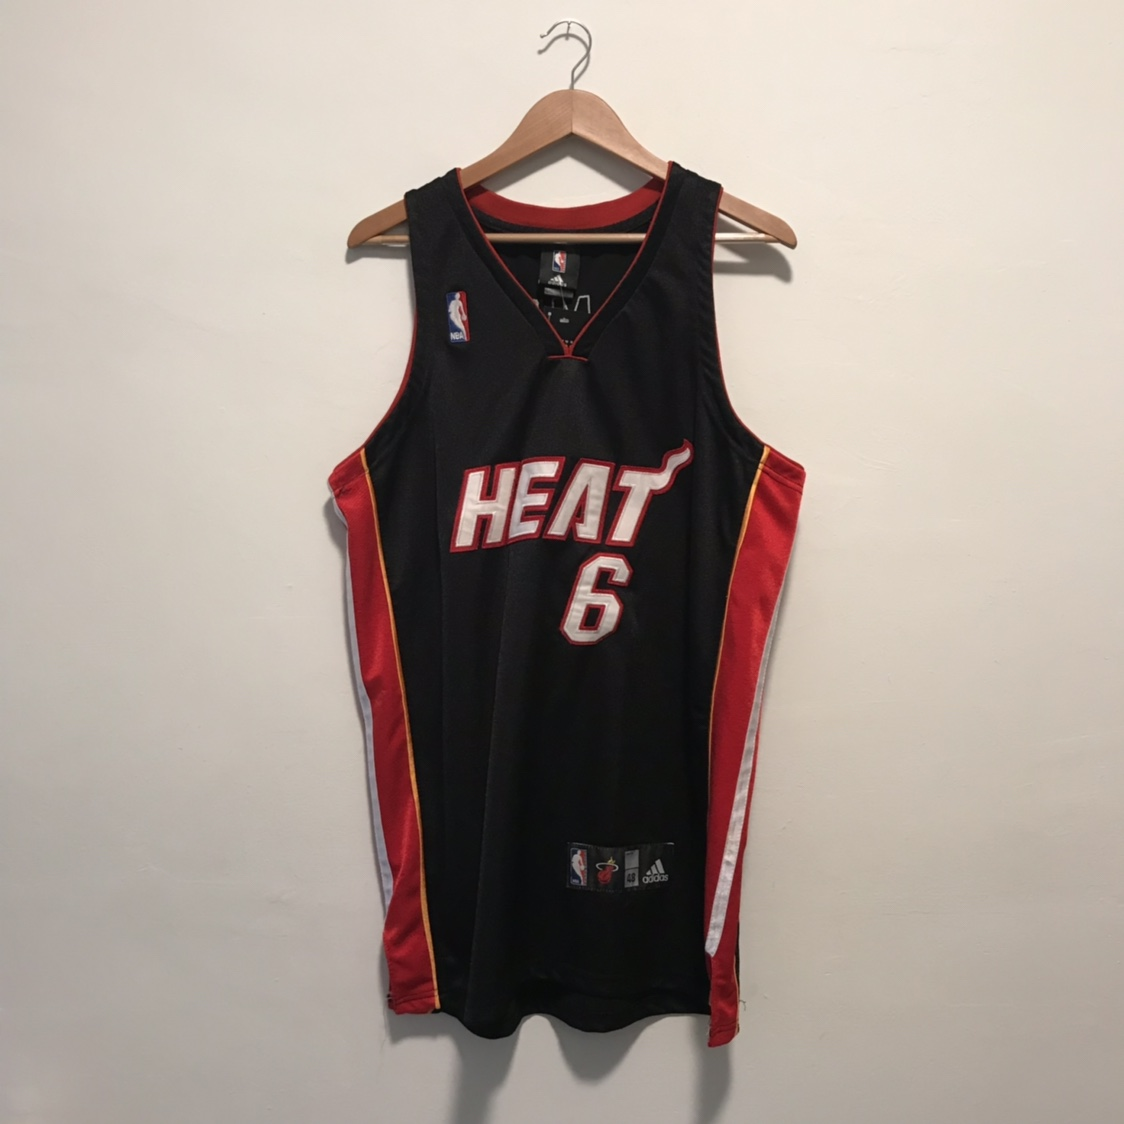 huge discount 842c1 360ec Authentic Miami Heat Lebron James jersey Sz 48 or... - Depop